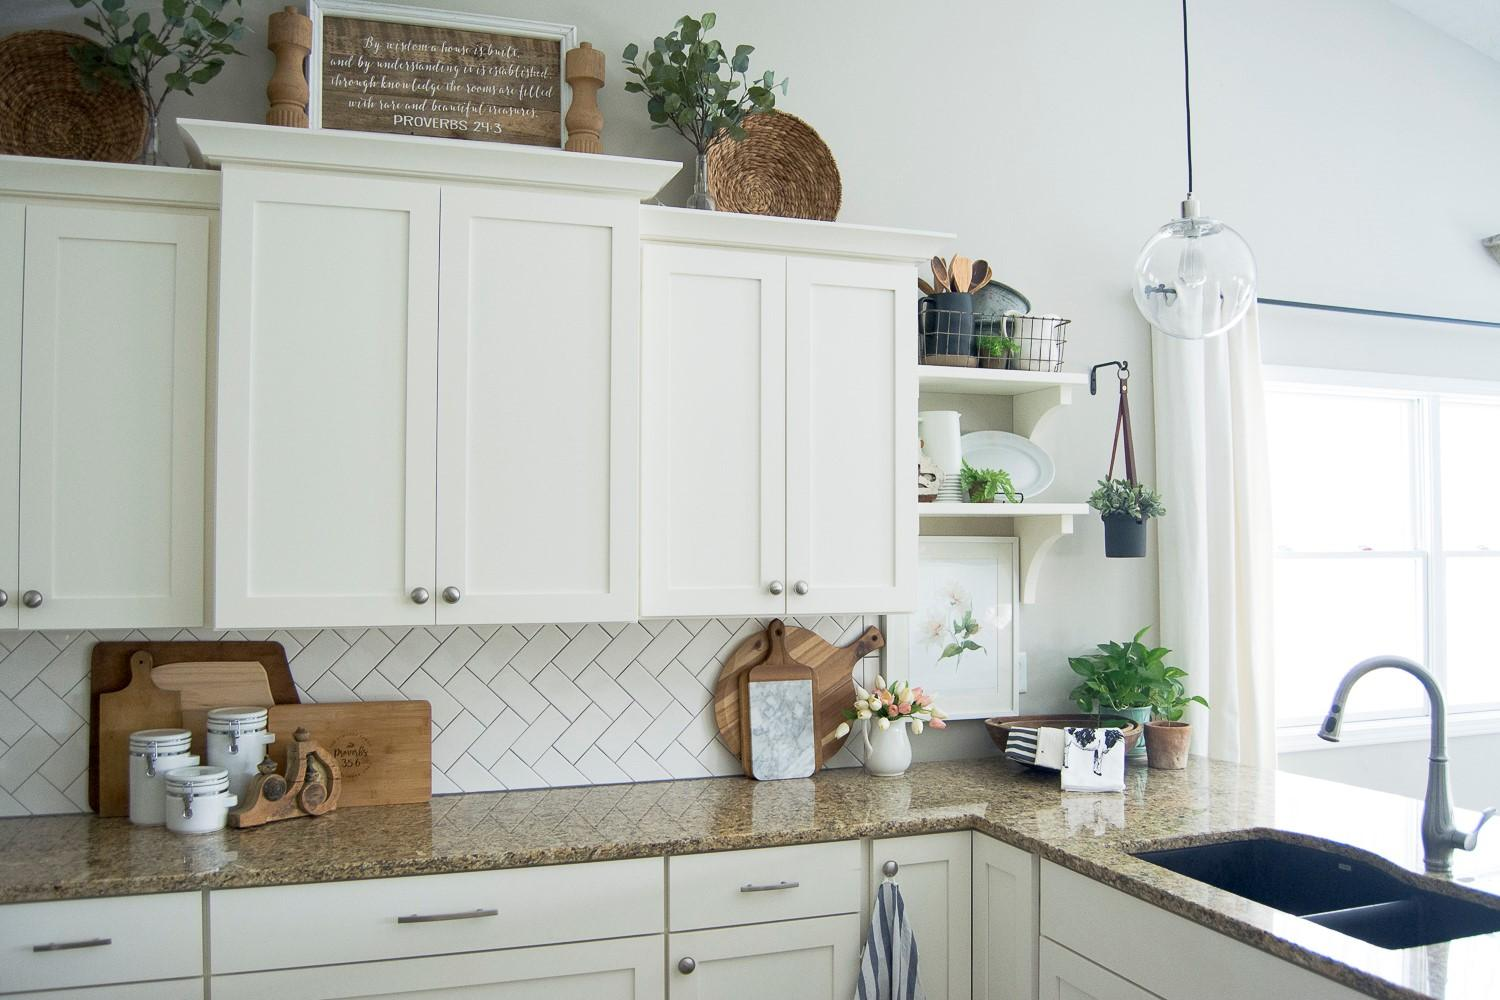 image - deas to Update Your Kitchen on A Budget